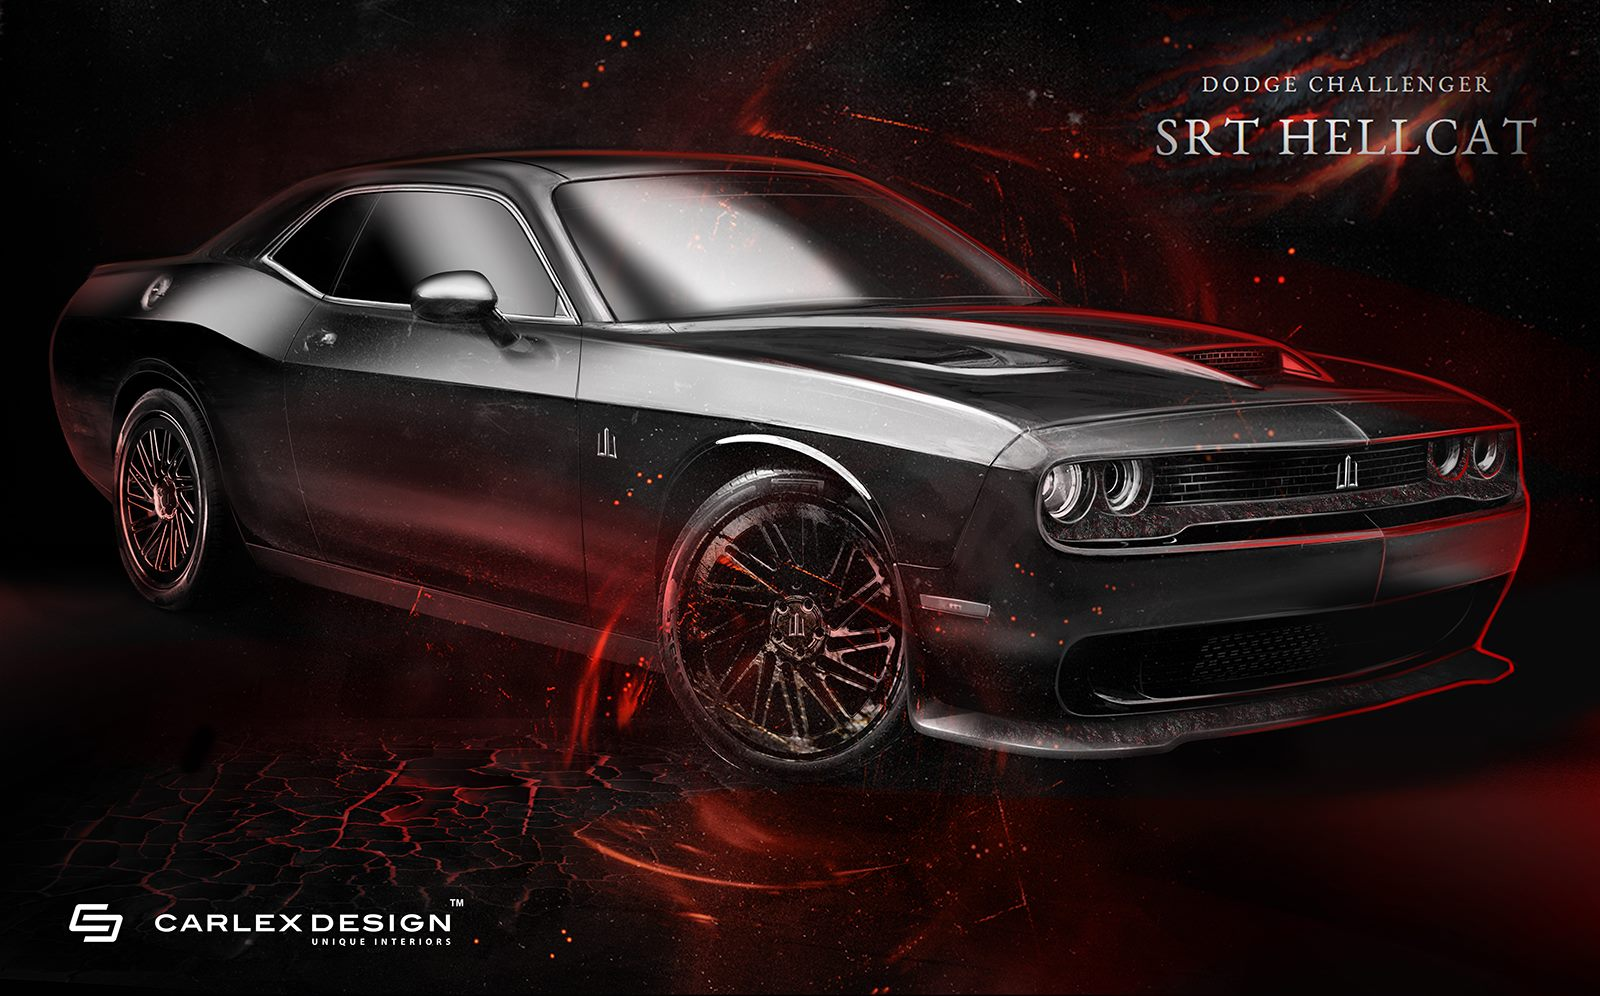 Challenger Srt Demon >> UPDATE: An Elephant Was Killed to Make This Dodge Challenger SRT Hellcat's Seats - autoevolution